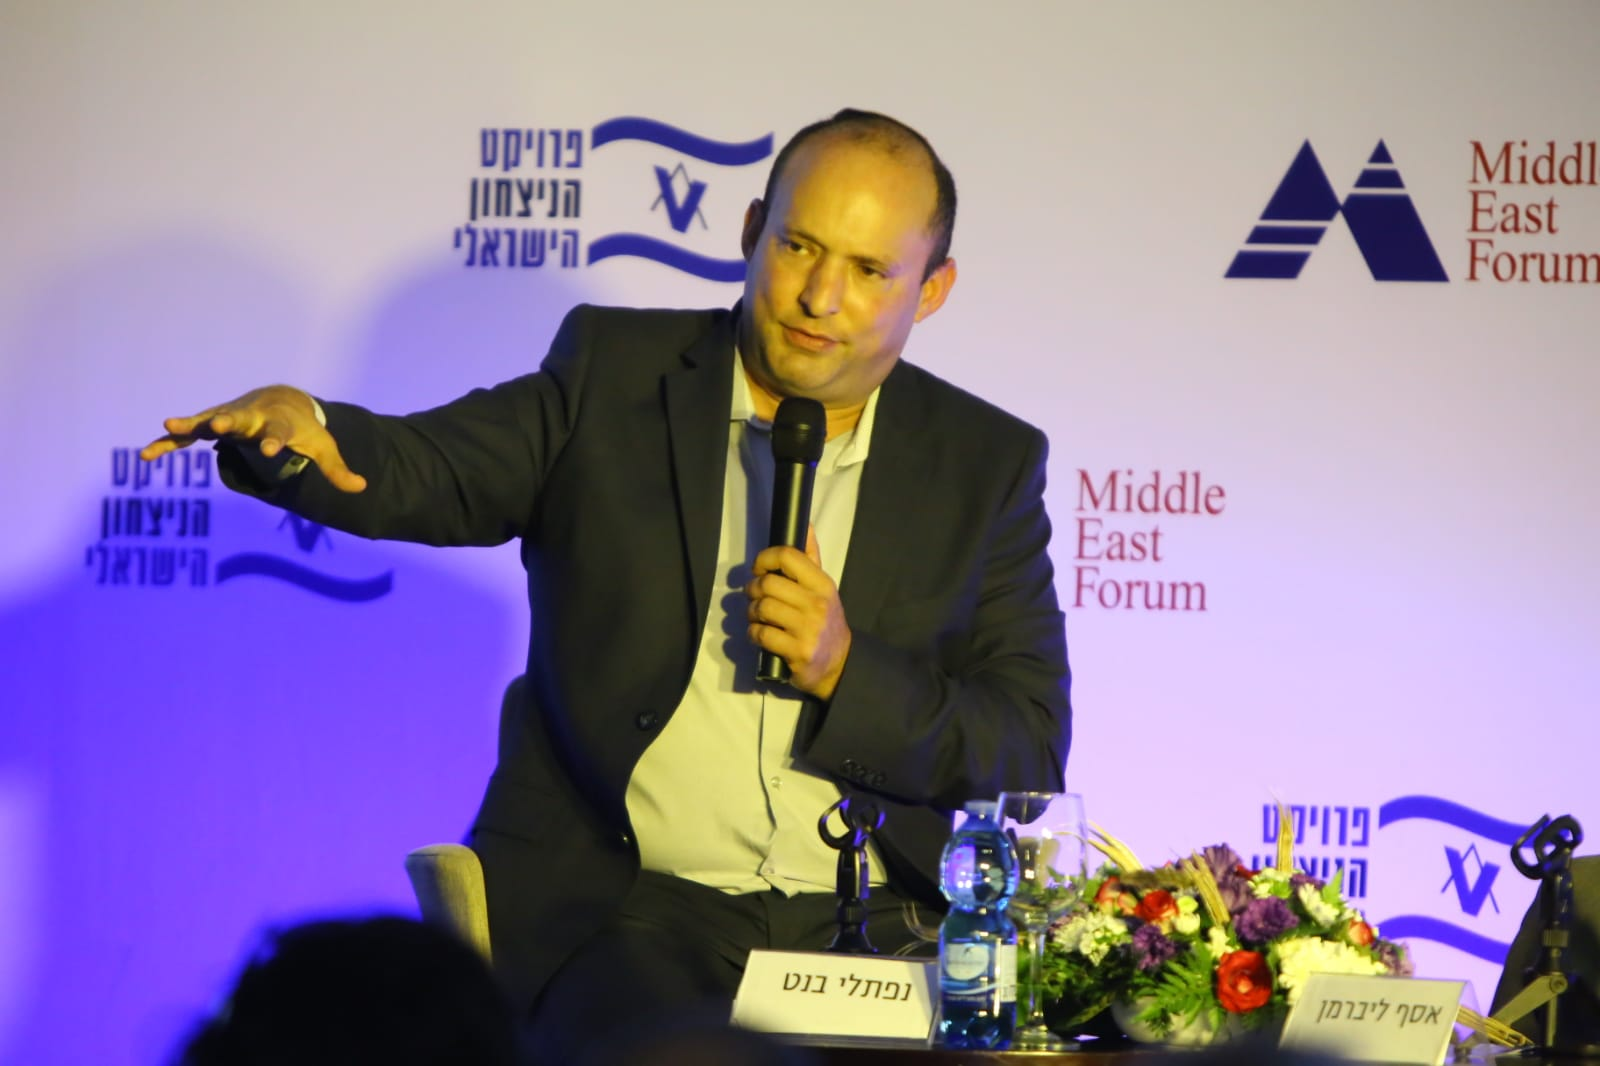 Israelis debate whether they have already won the Middle